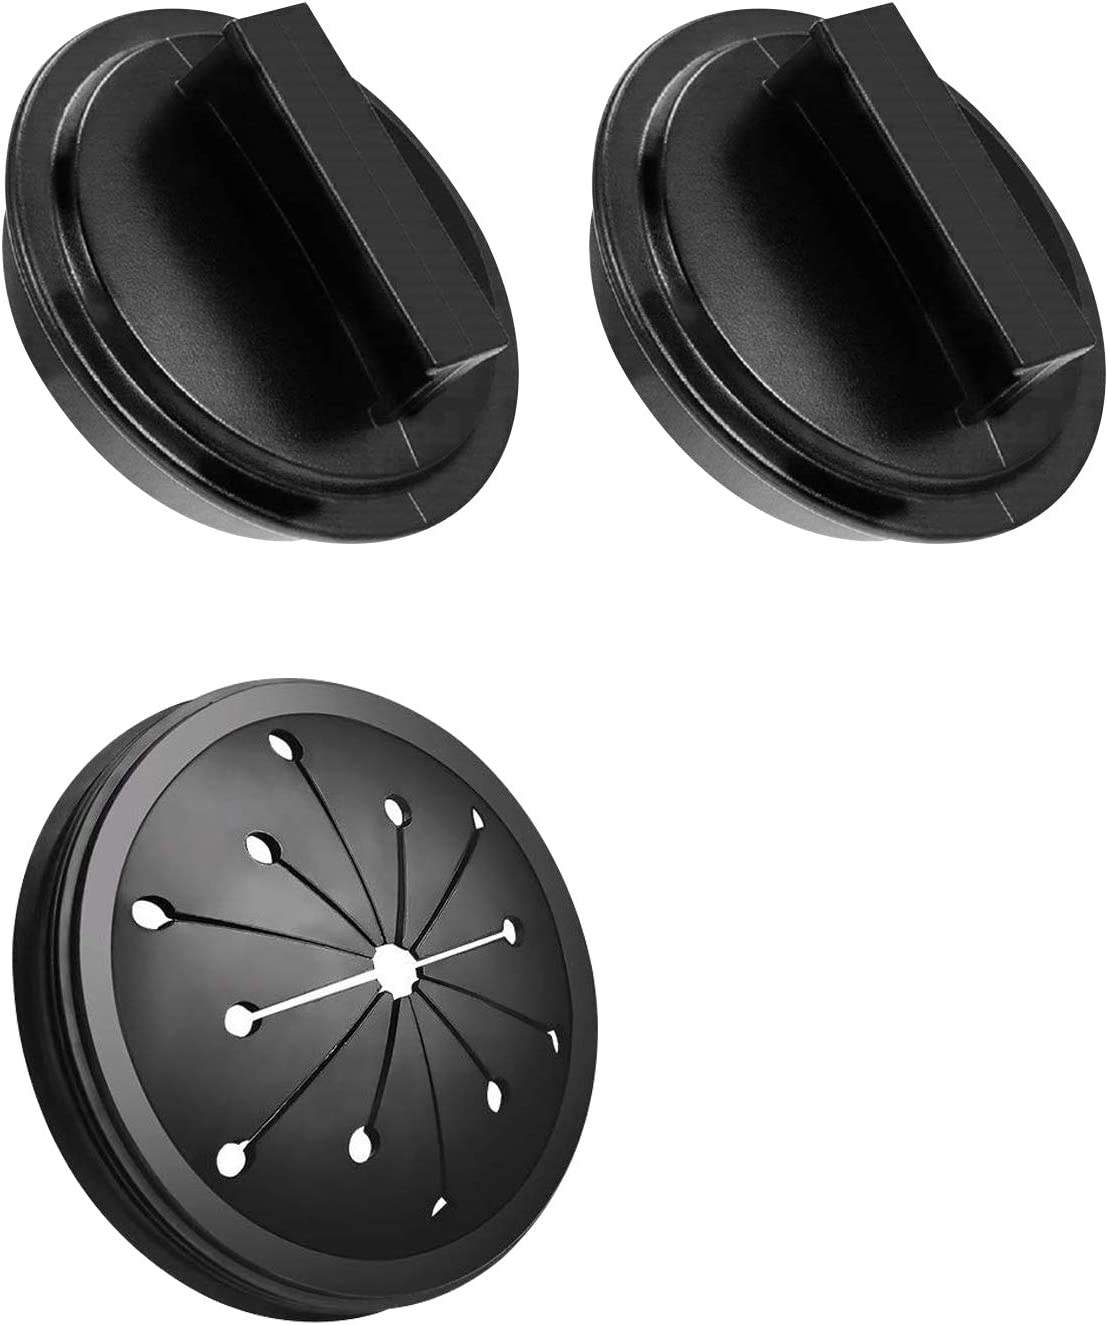 Garbage Disposal Splash Guards Set 3 Pack(2+1) Removable Sink Baffle and Food Waste Disposer Accessories for Kitchen